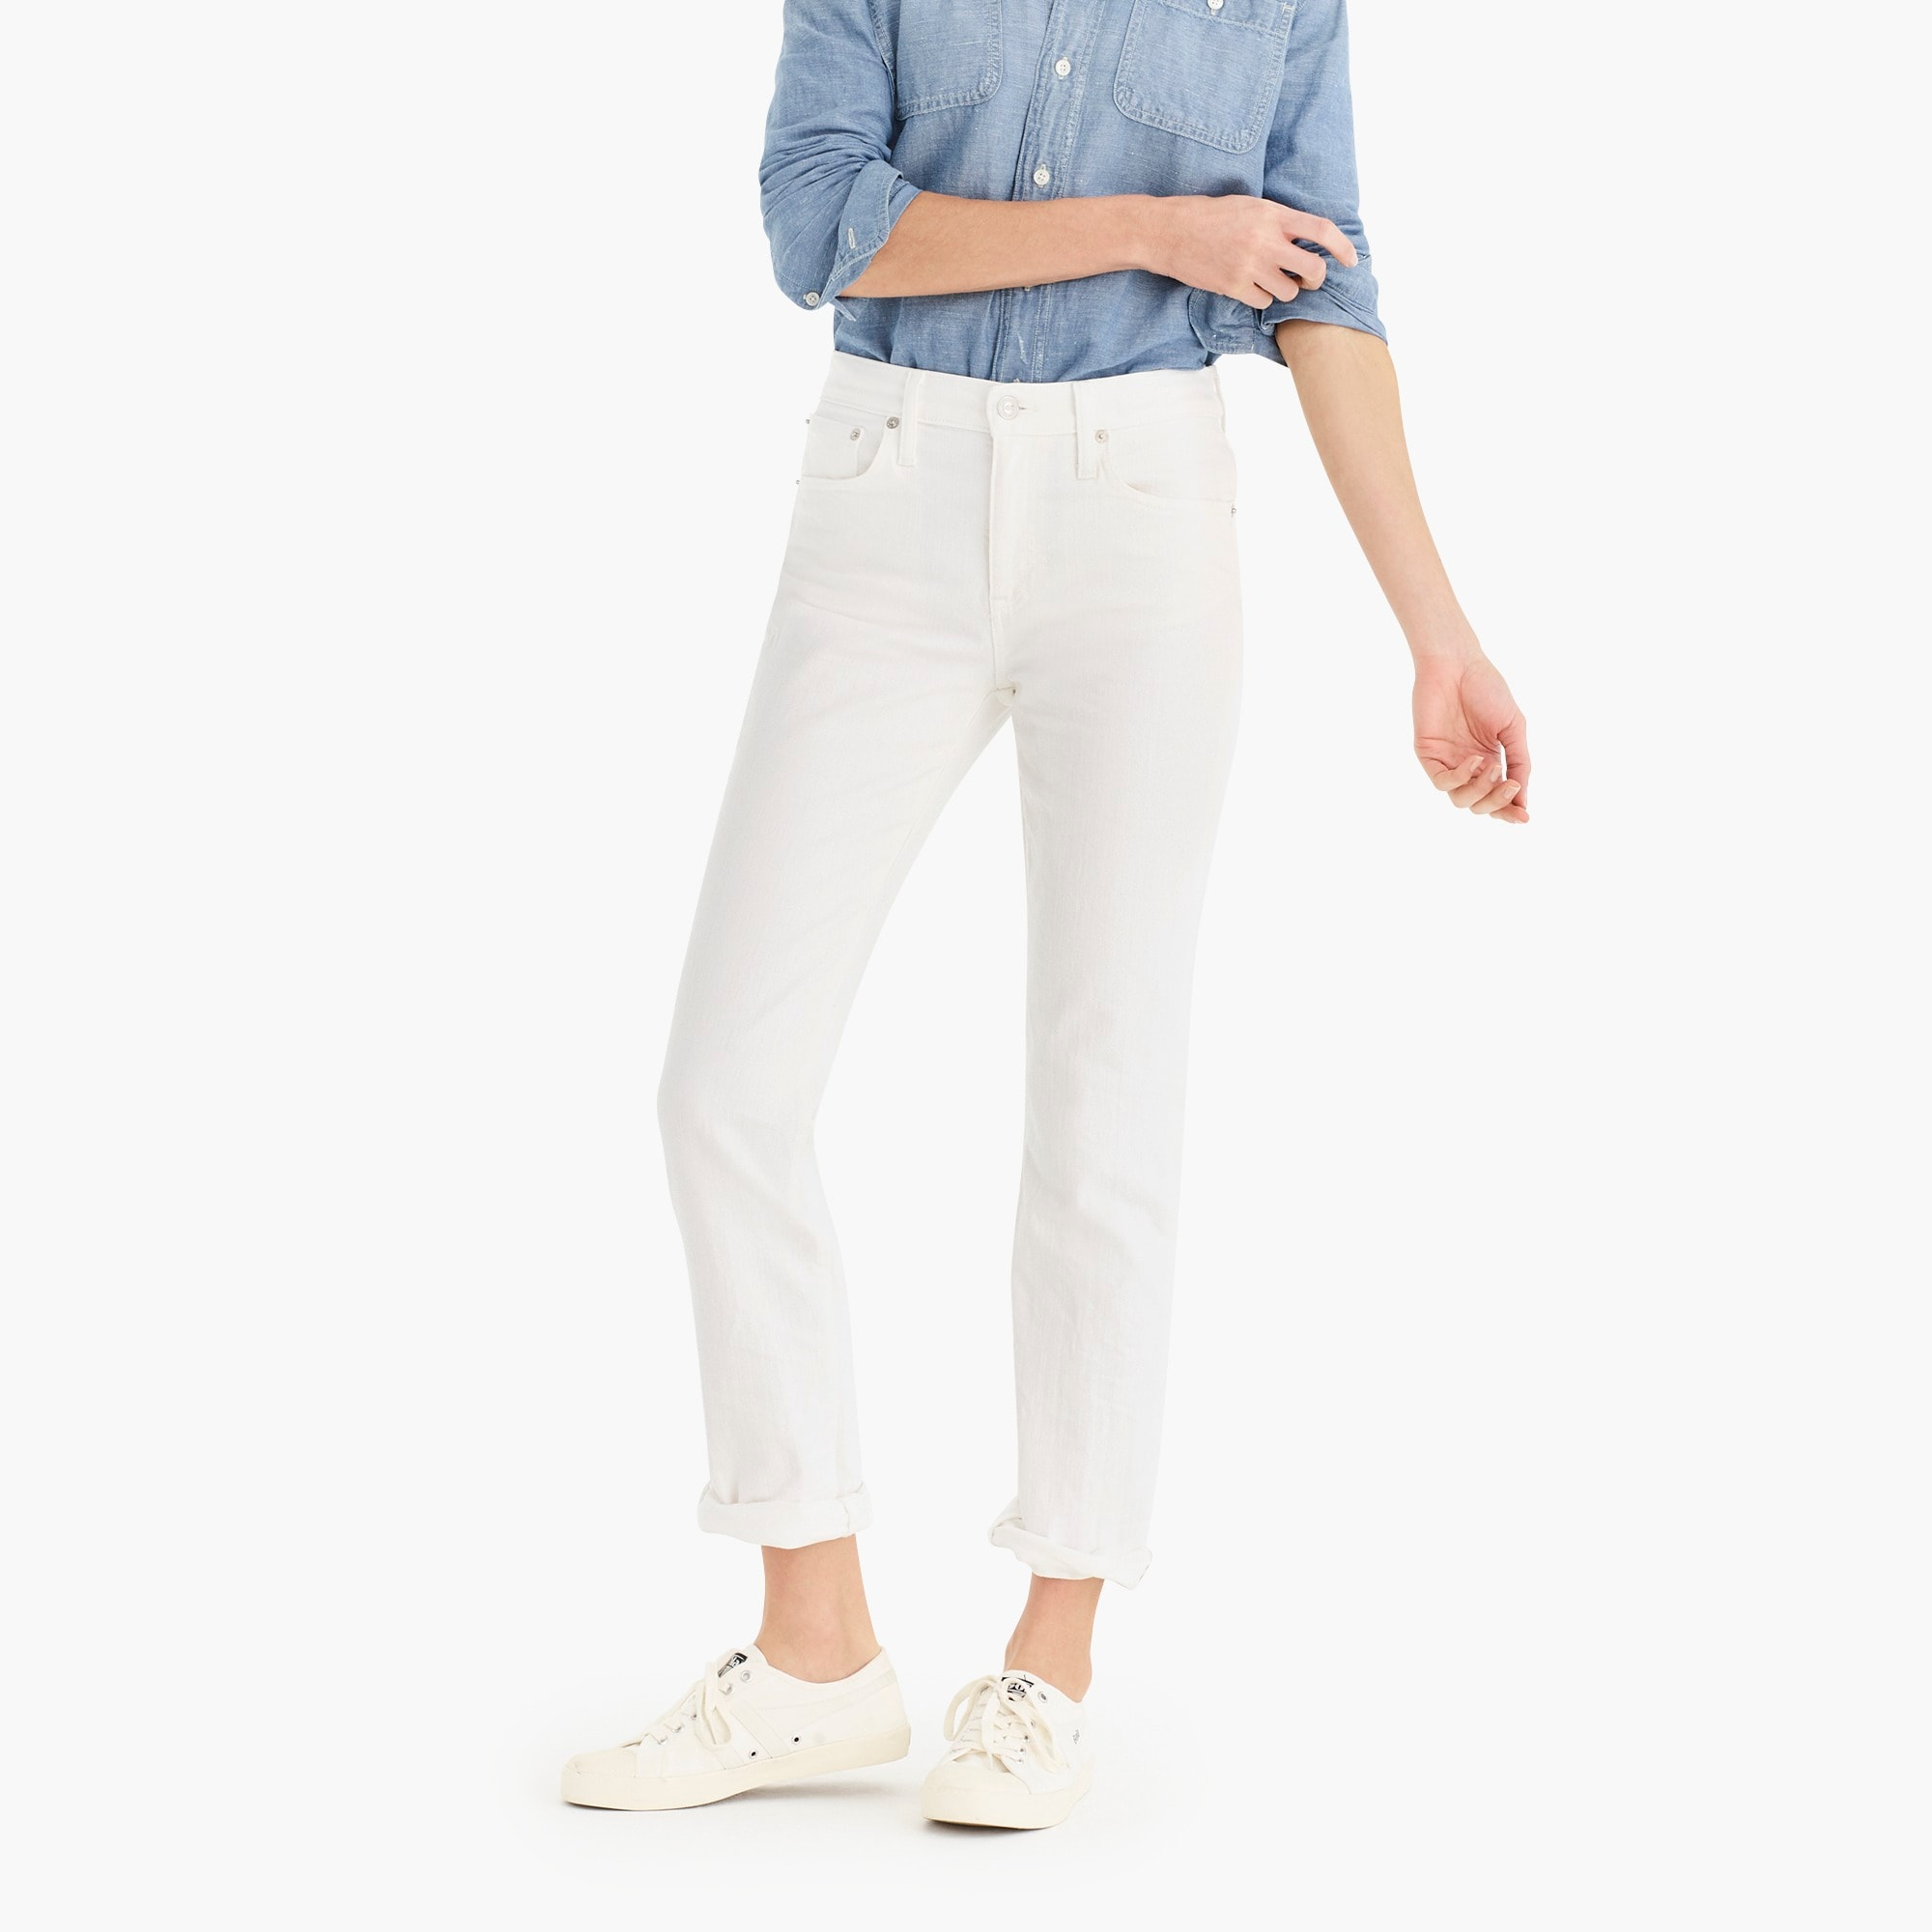 petite slim broken-in boyfriend jean in white : women denim